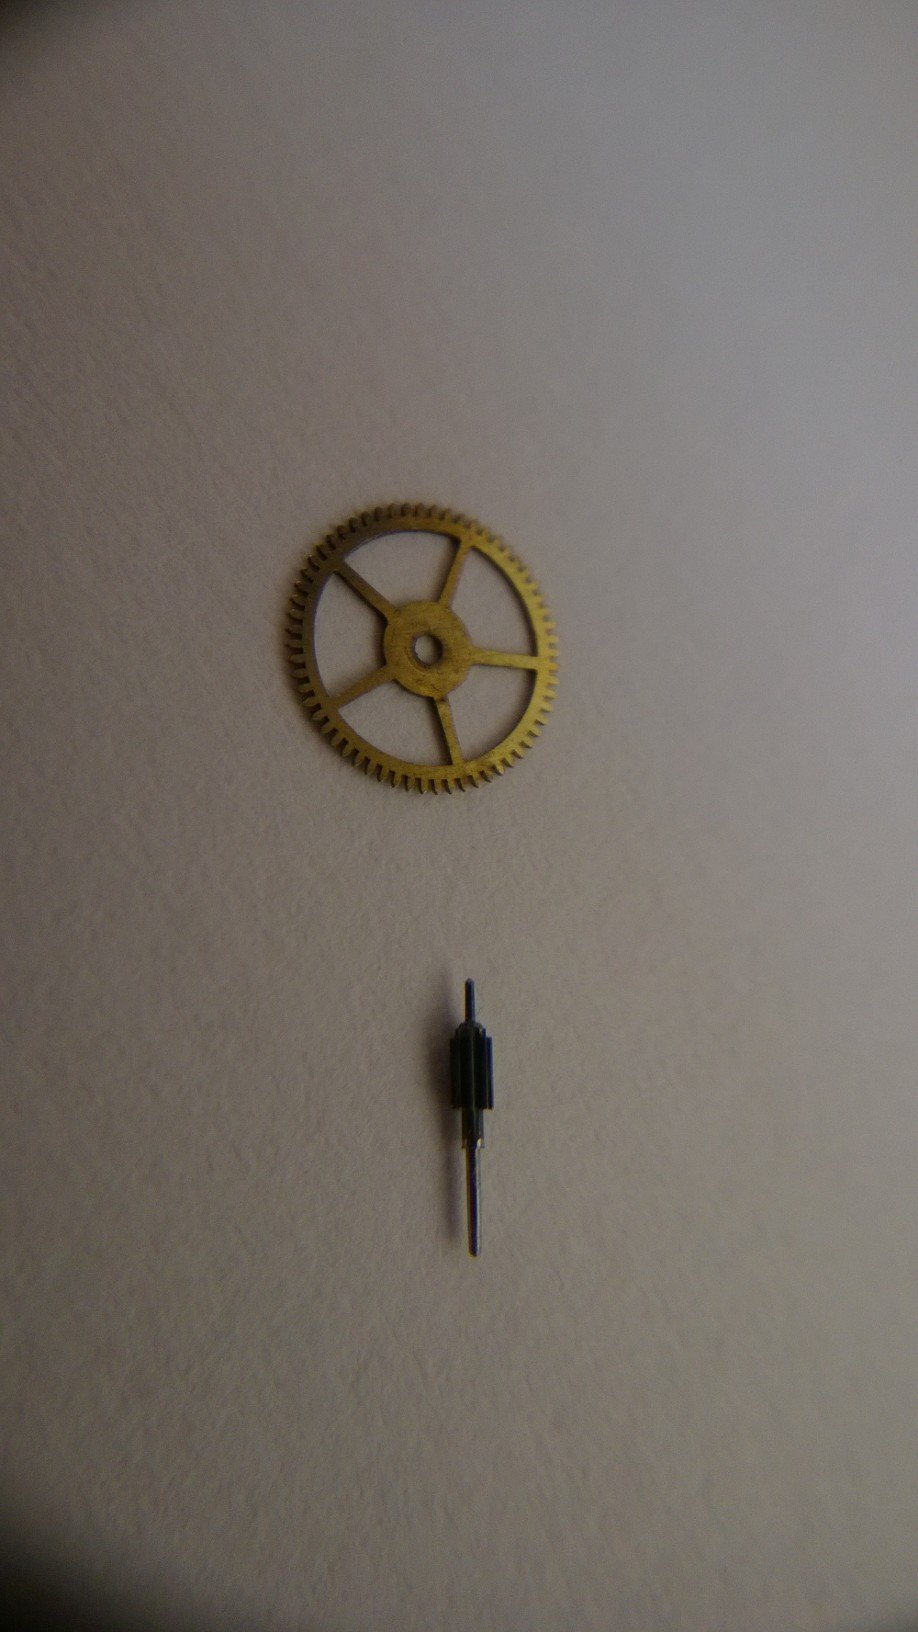 Two parts from inside a watch